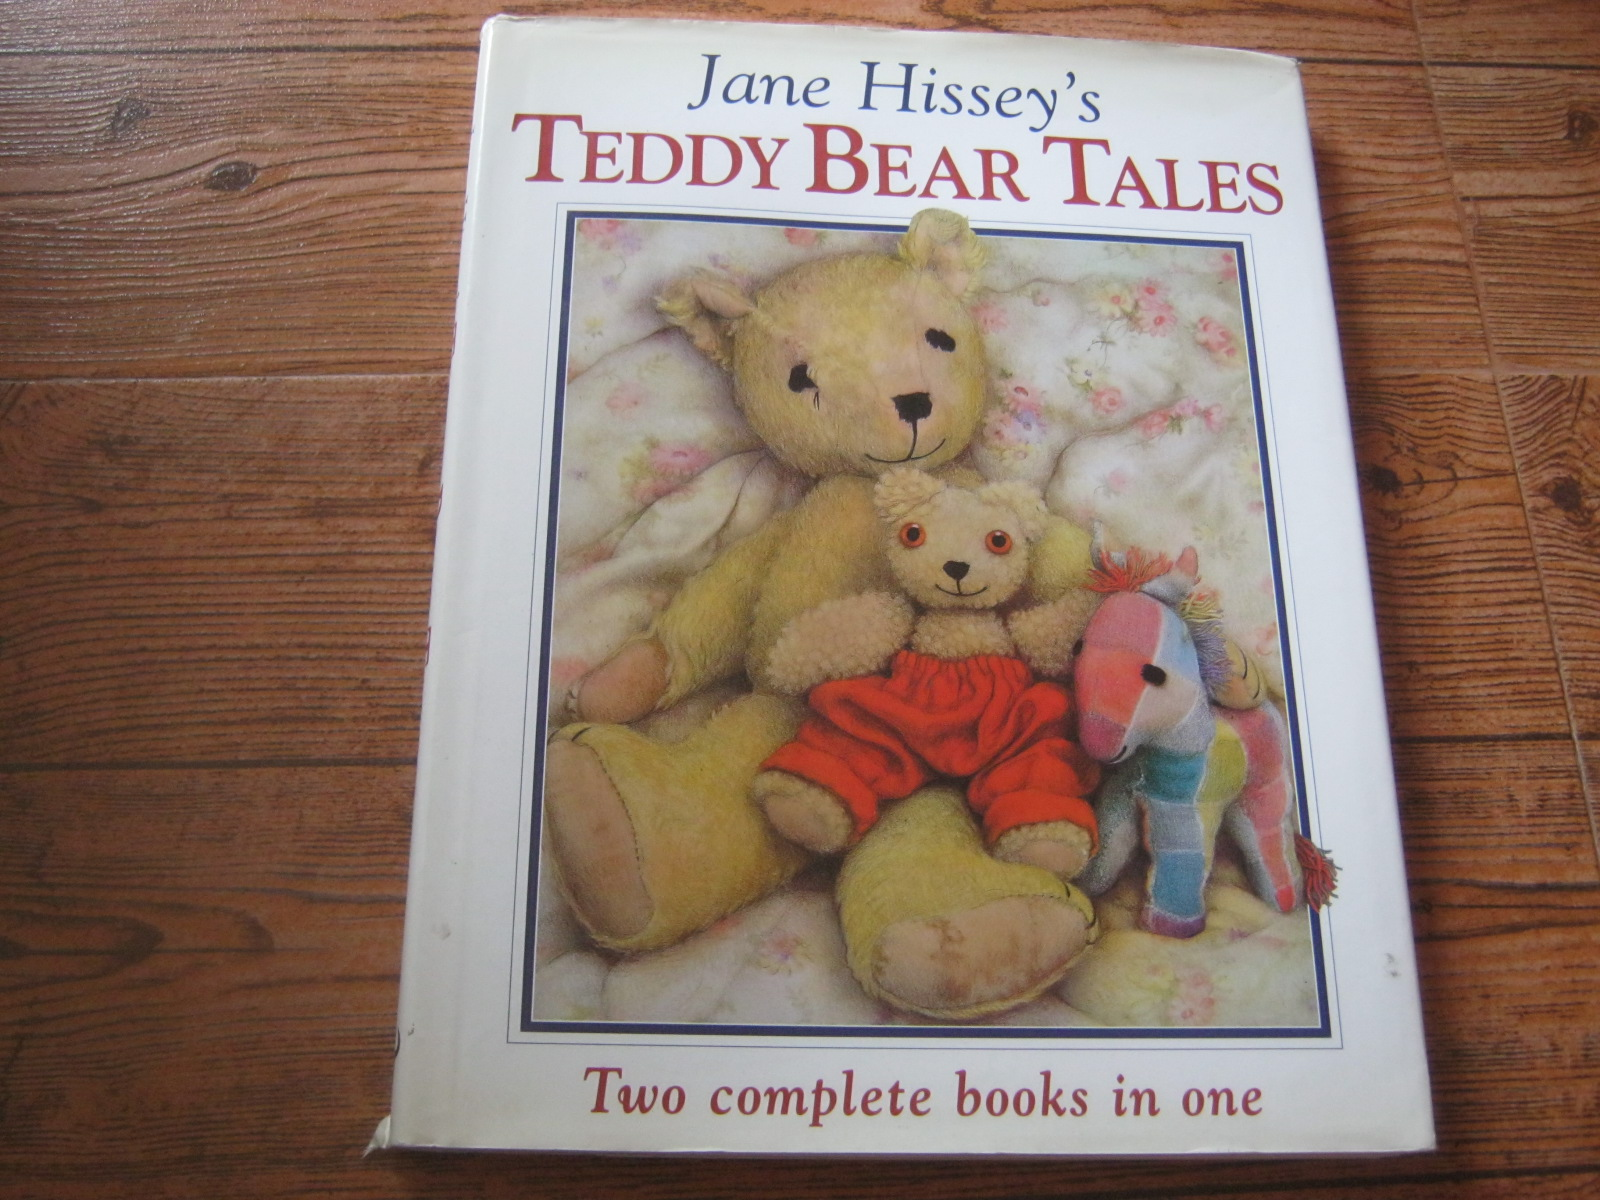 Jane Hissey's Teddy Bear Tales